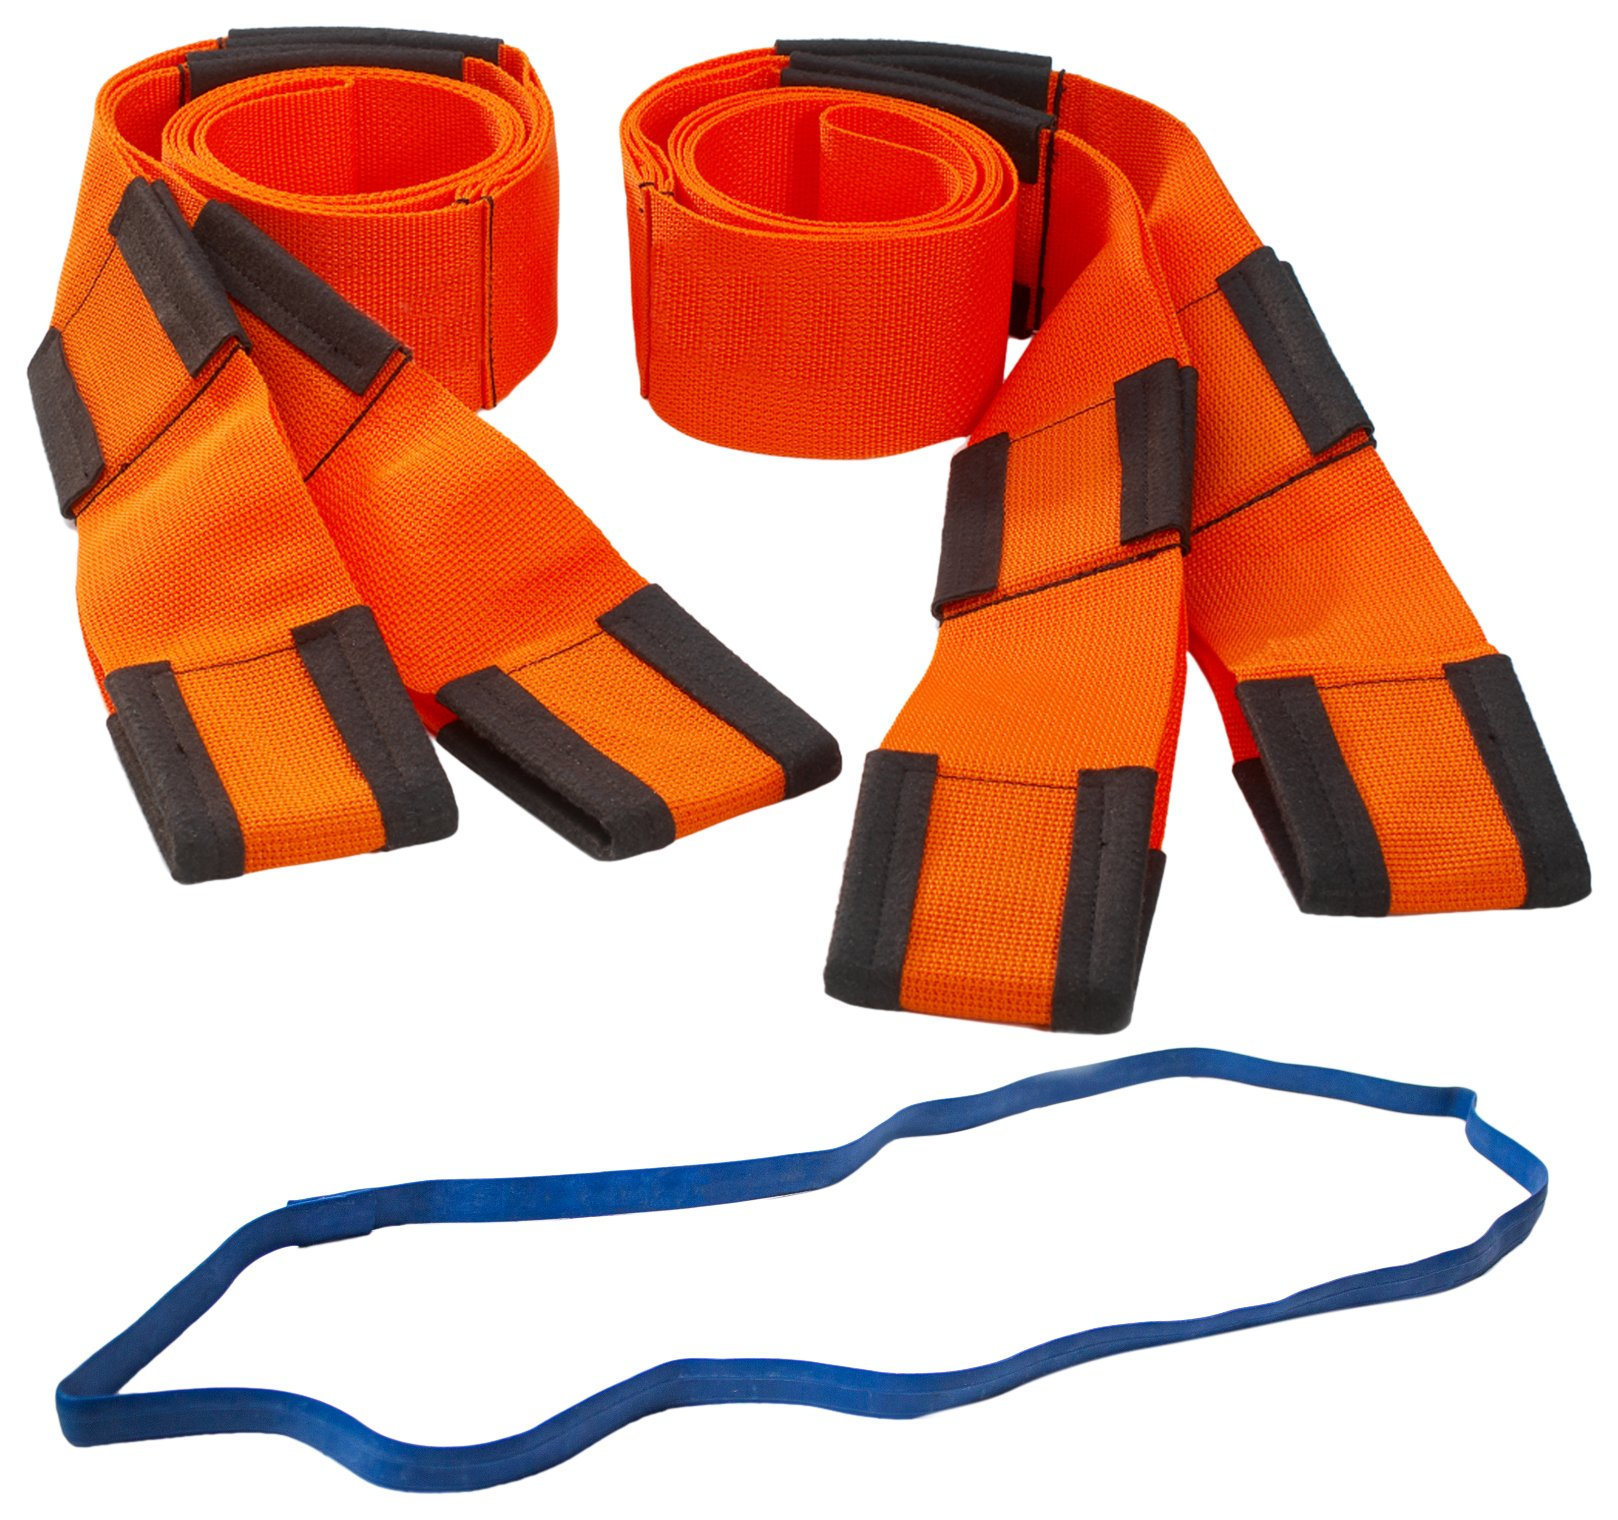 Forearm Forklift Lifting and Moving Straps for Furniture, Appliances, Mattresses or Heavy Objects up to 800 Pounds 2-Person, Includes Mover's Rubber Band, Orange, Model L74995CNFRB by Forearm Forklift